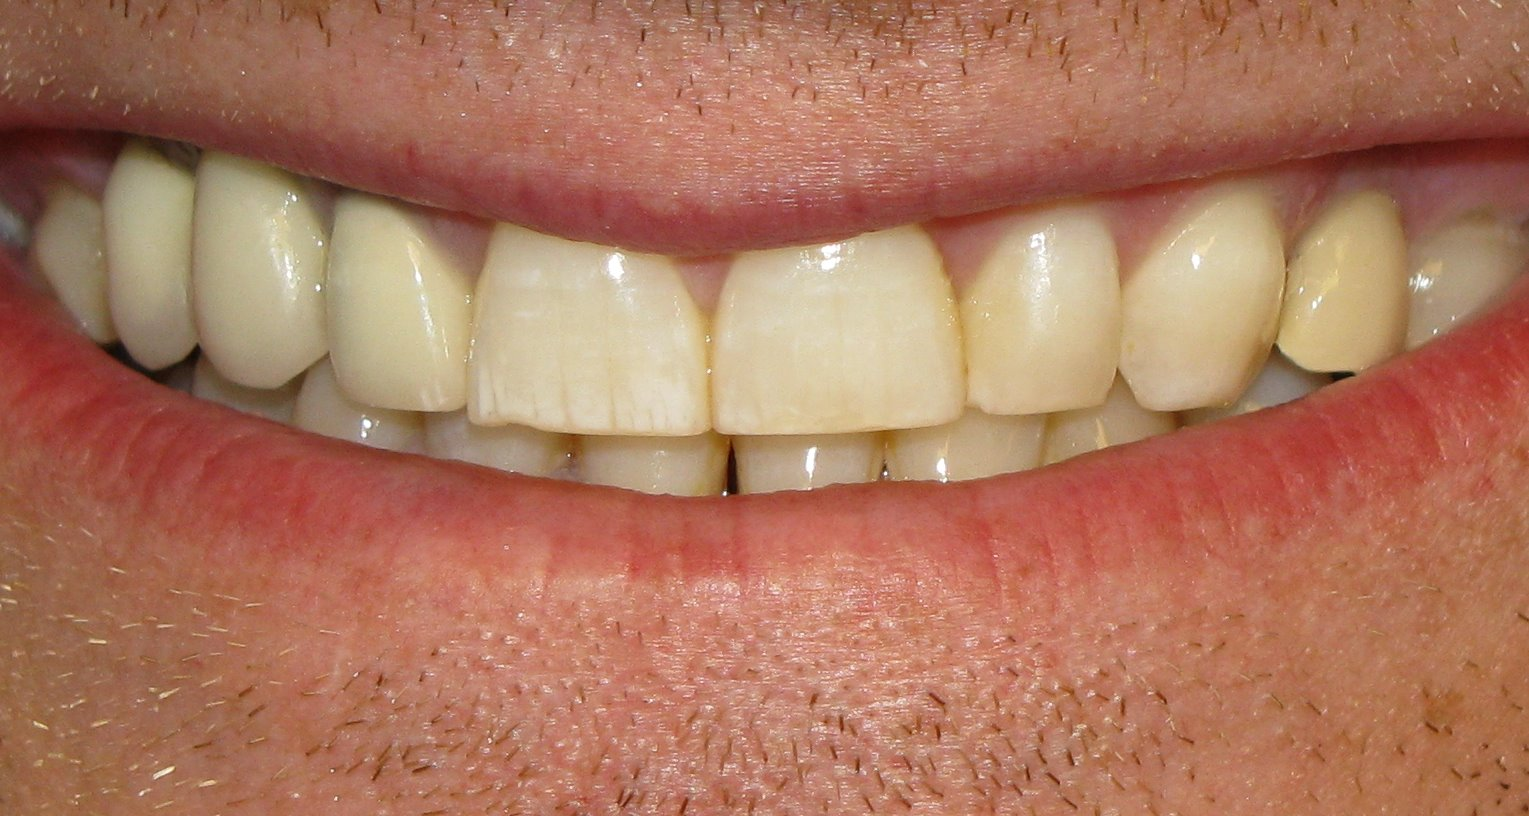 Tooth discoloration: Causes, prevention, and treatment